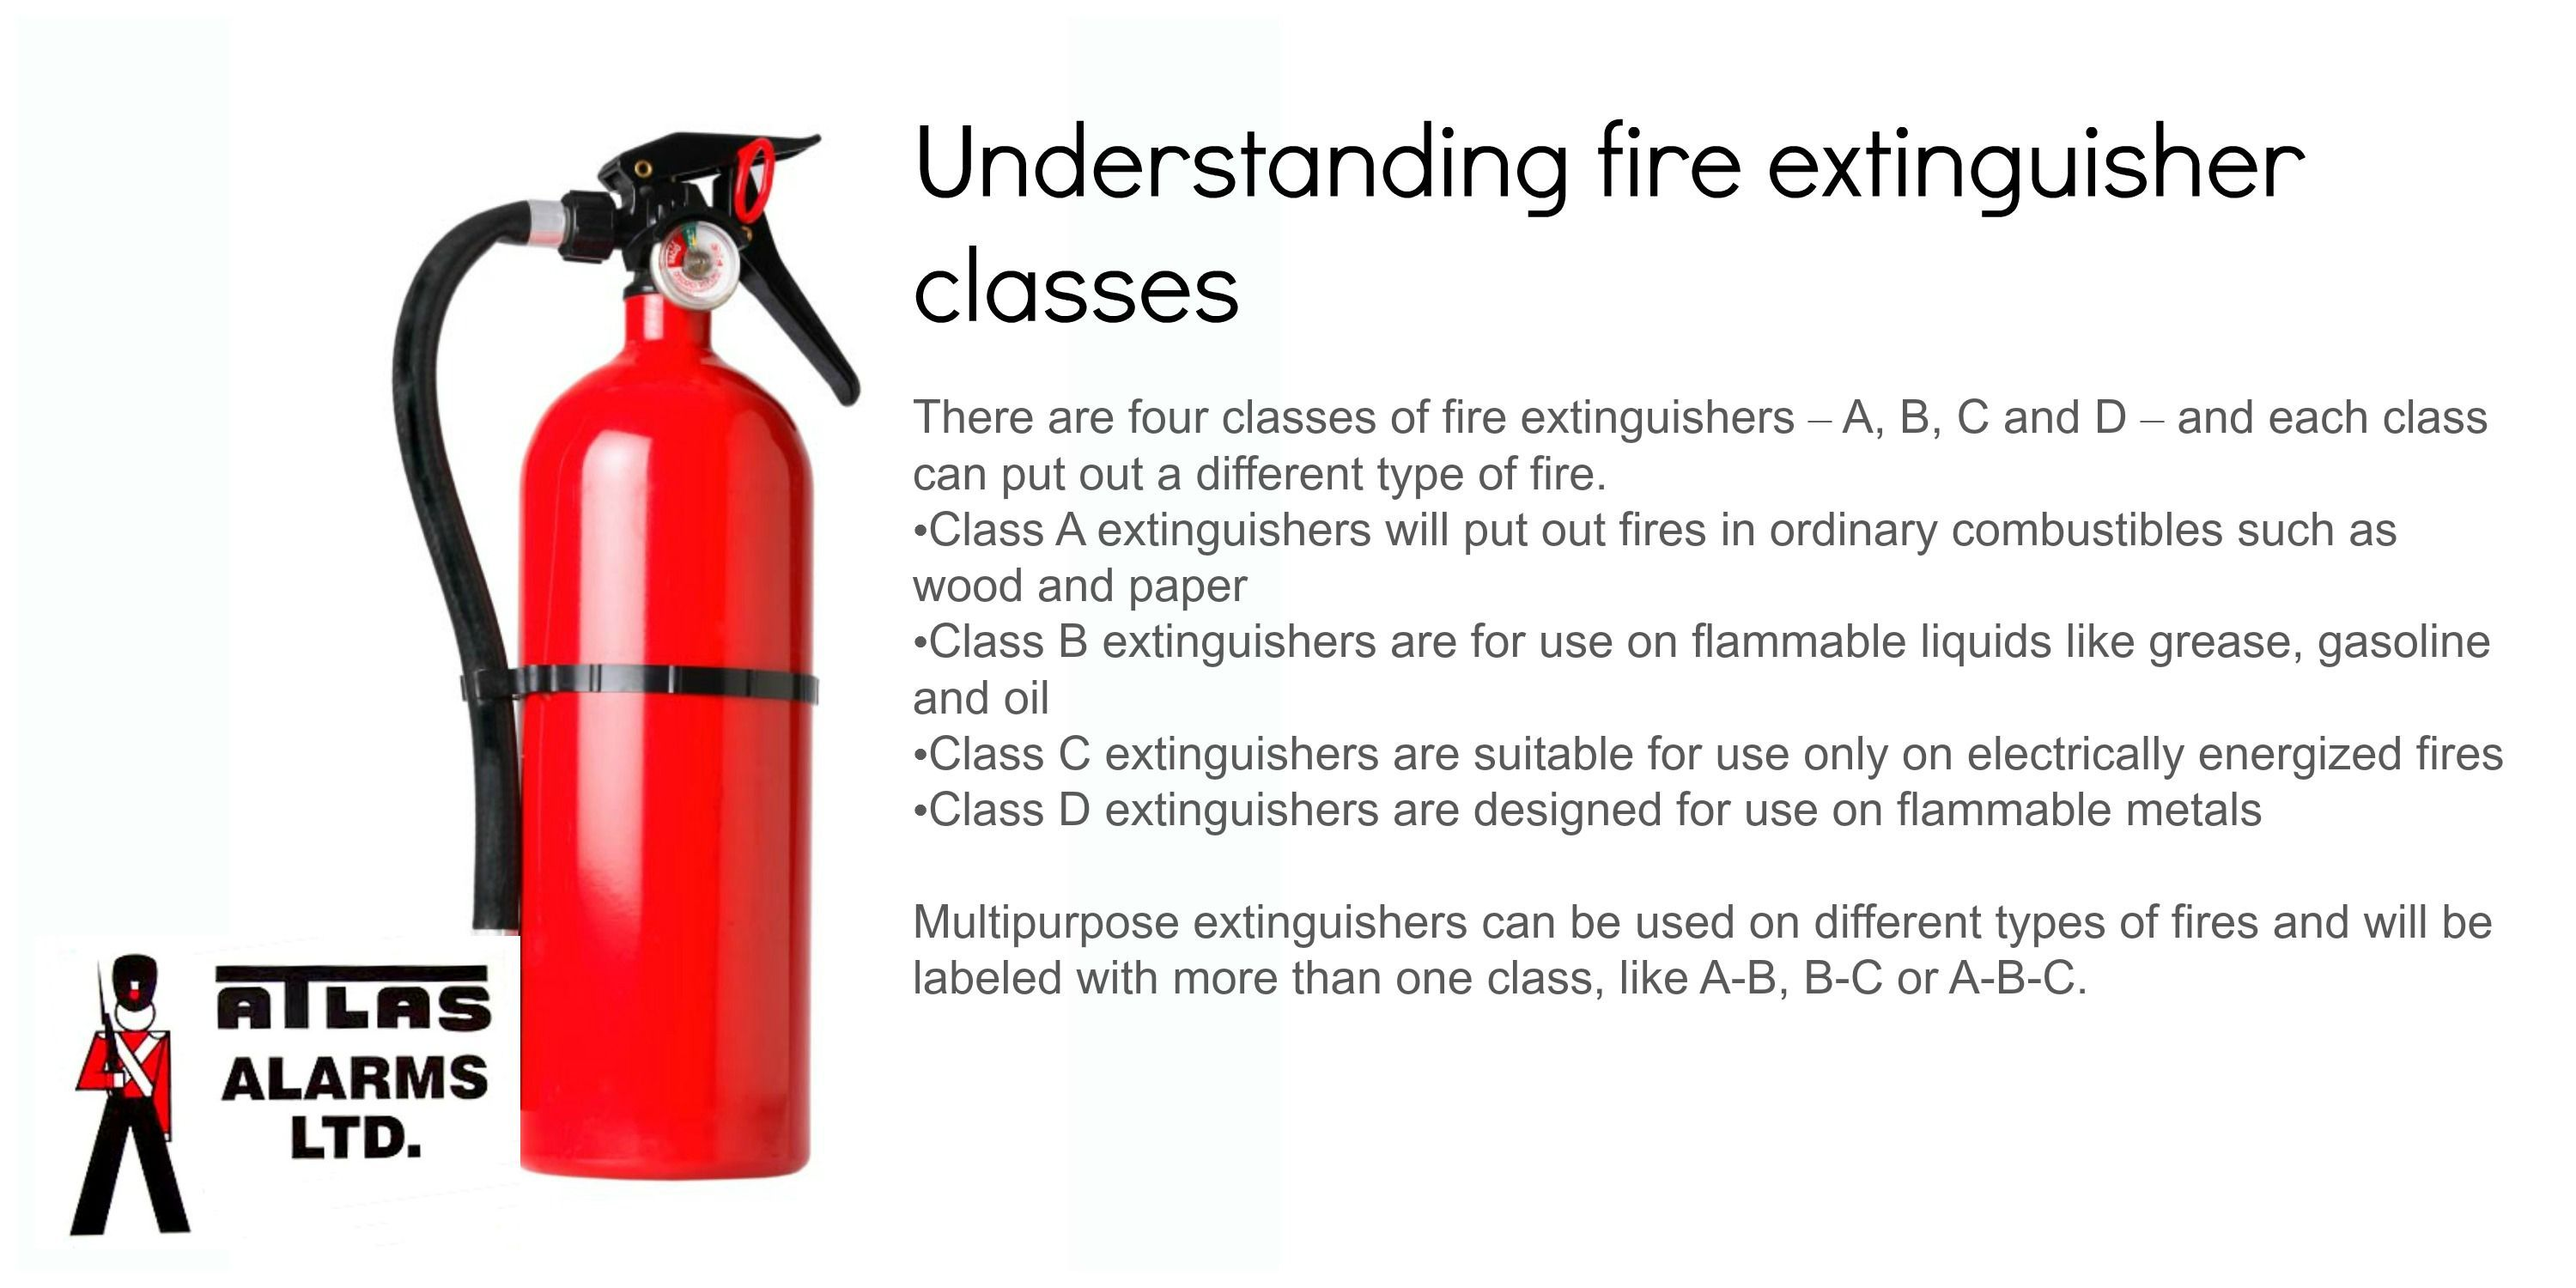 Different classes of fire extinguishers fire